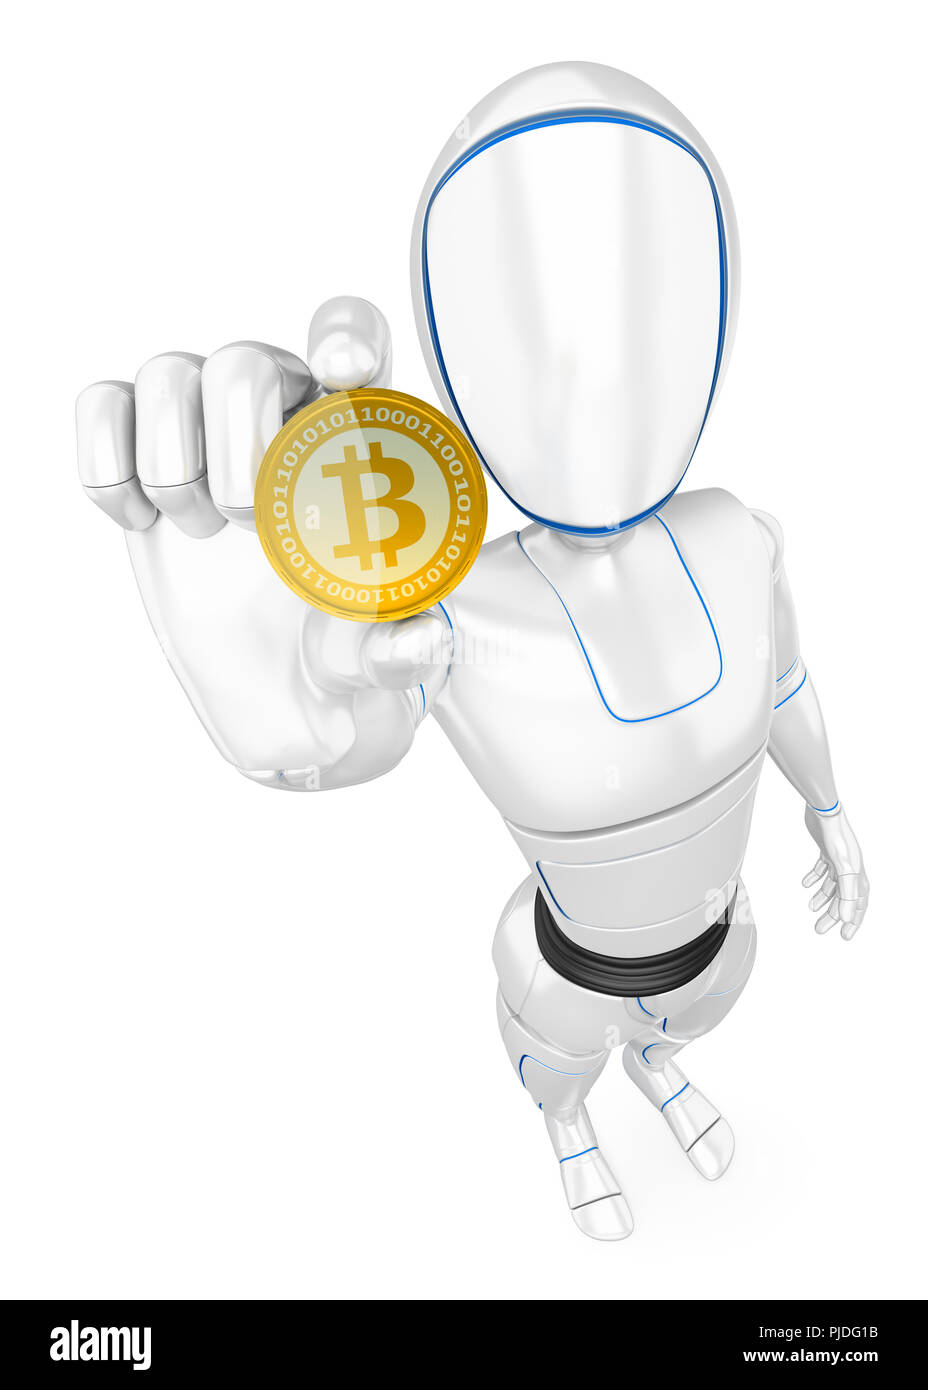 3d futuristic android illustration. Humanoid robot mining a cryptocurrency bitcoin. Isolated white background. - Stock Image